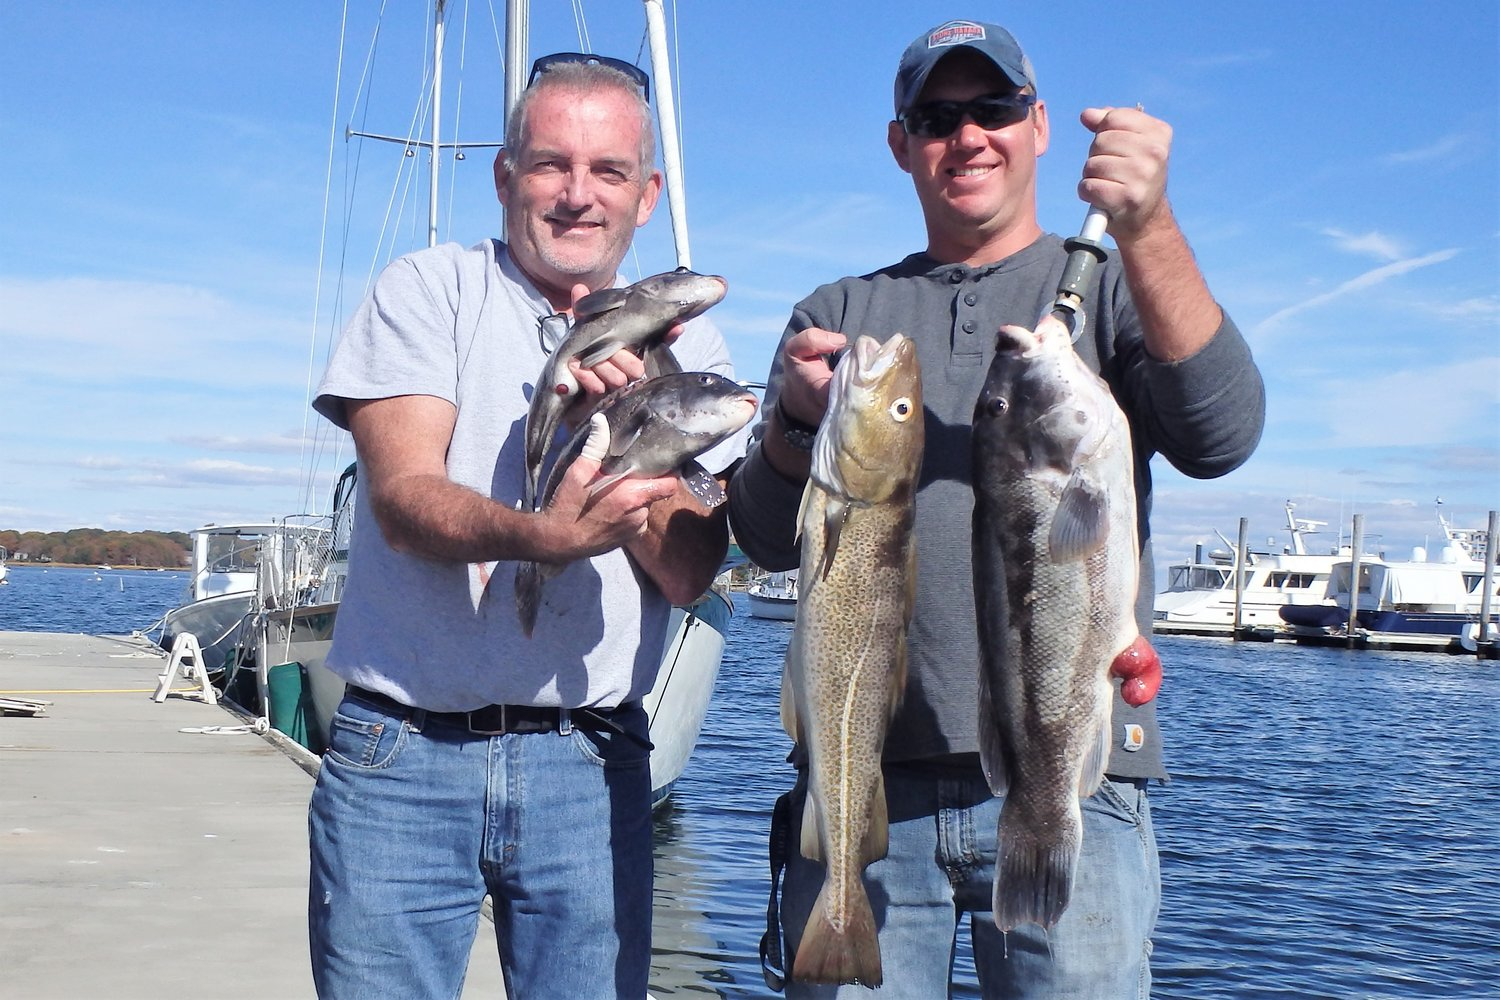 Dave Bonney, Barrington and Peter Roche, Stratford, CT with the some of the ten tautog and cod they caught when fishing off Newport.